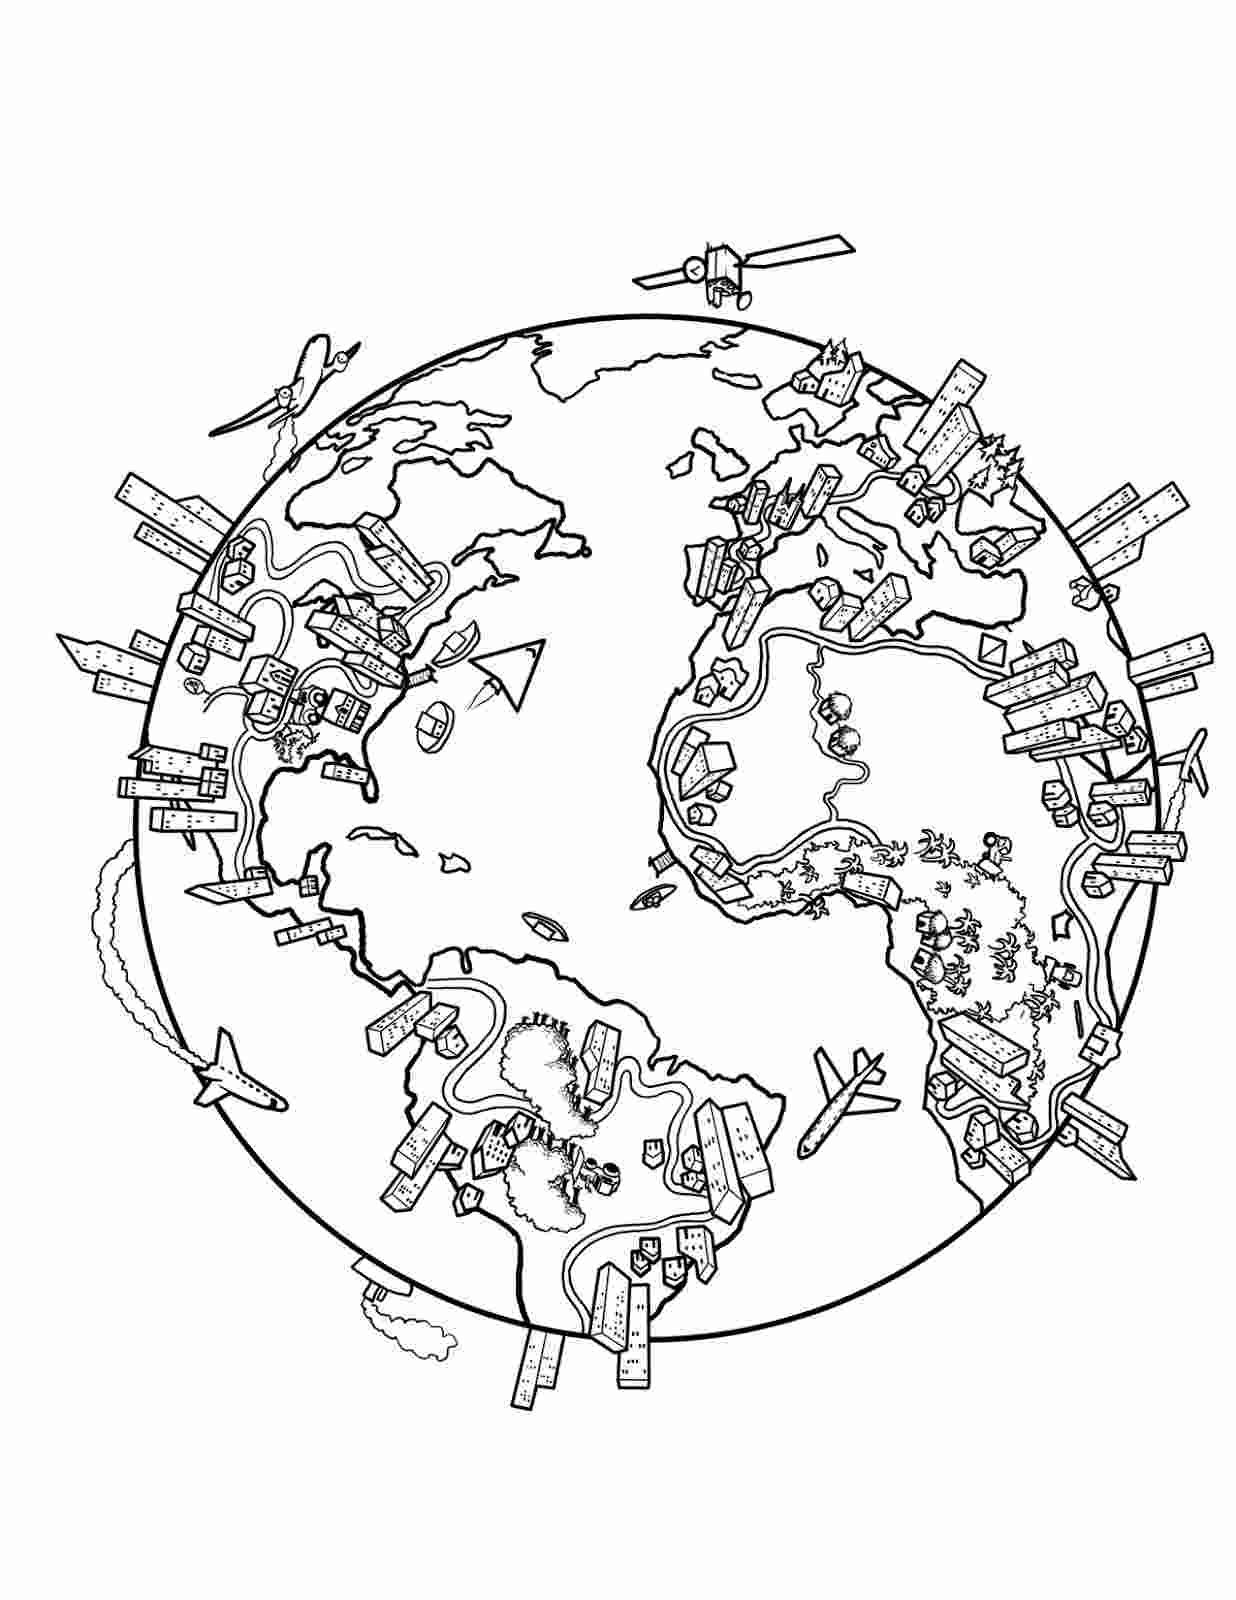 World Map Coloring Pages Jeneart The World Coloring Page Coloring World Map Pages 117401 In 2020 World Map Coloring Page Free Printable World Map World Map Printable